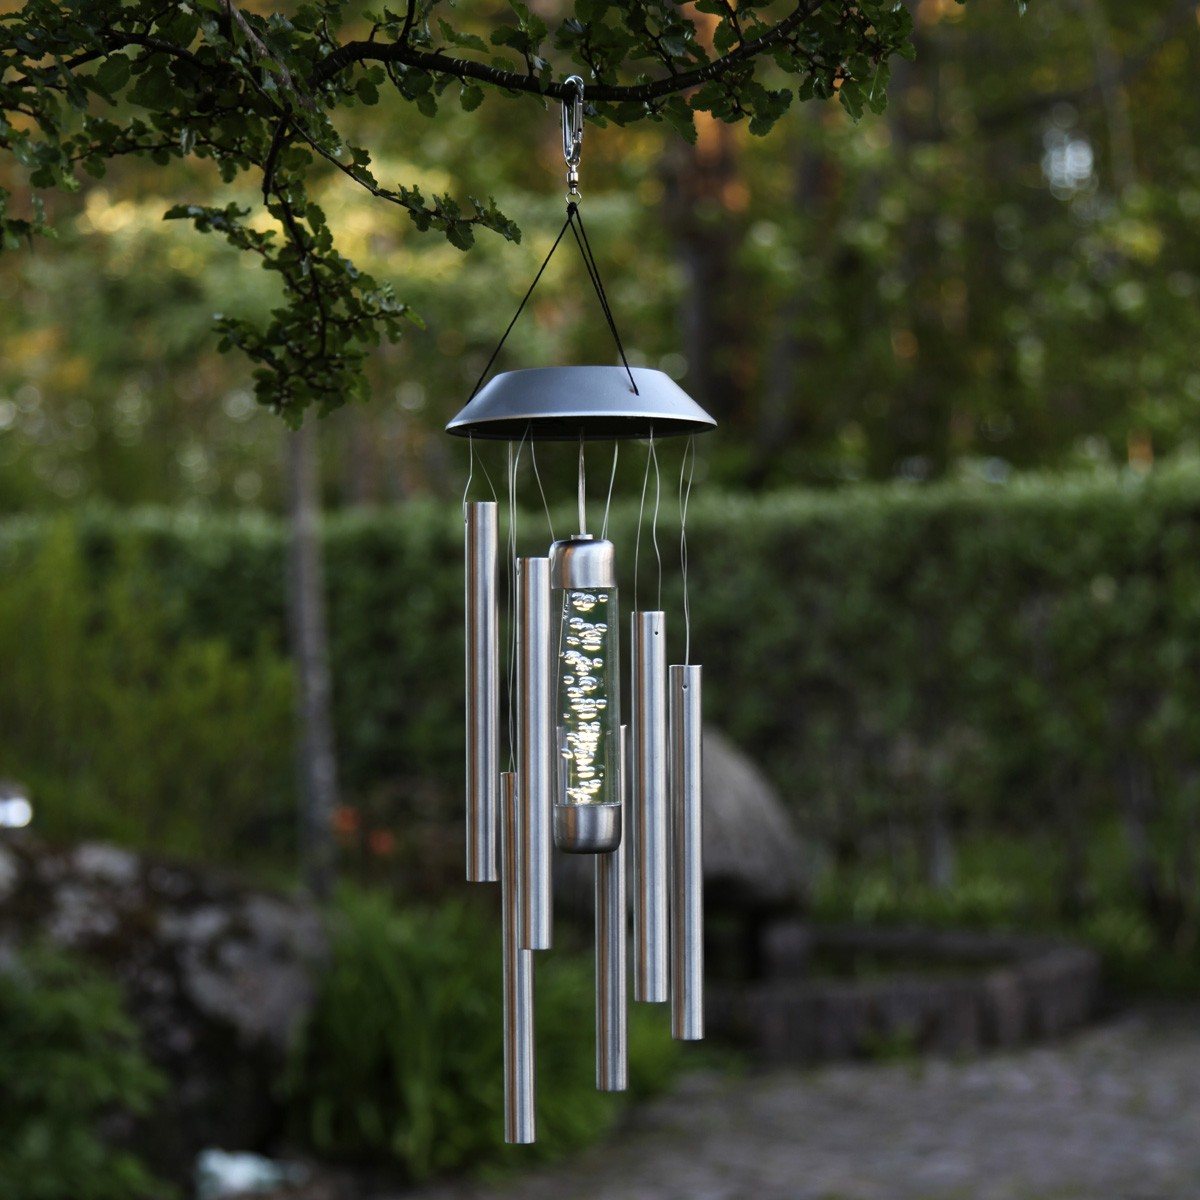 LED Solar Windspiel Bubbly - Edelstahl - warmweisse LED - H: 35cm - Dämmerungssensor - outdoor